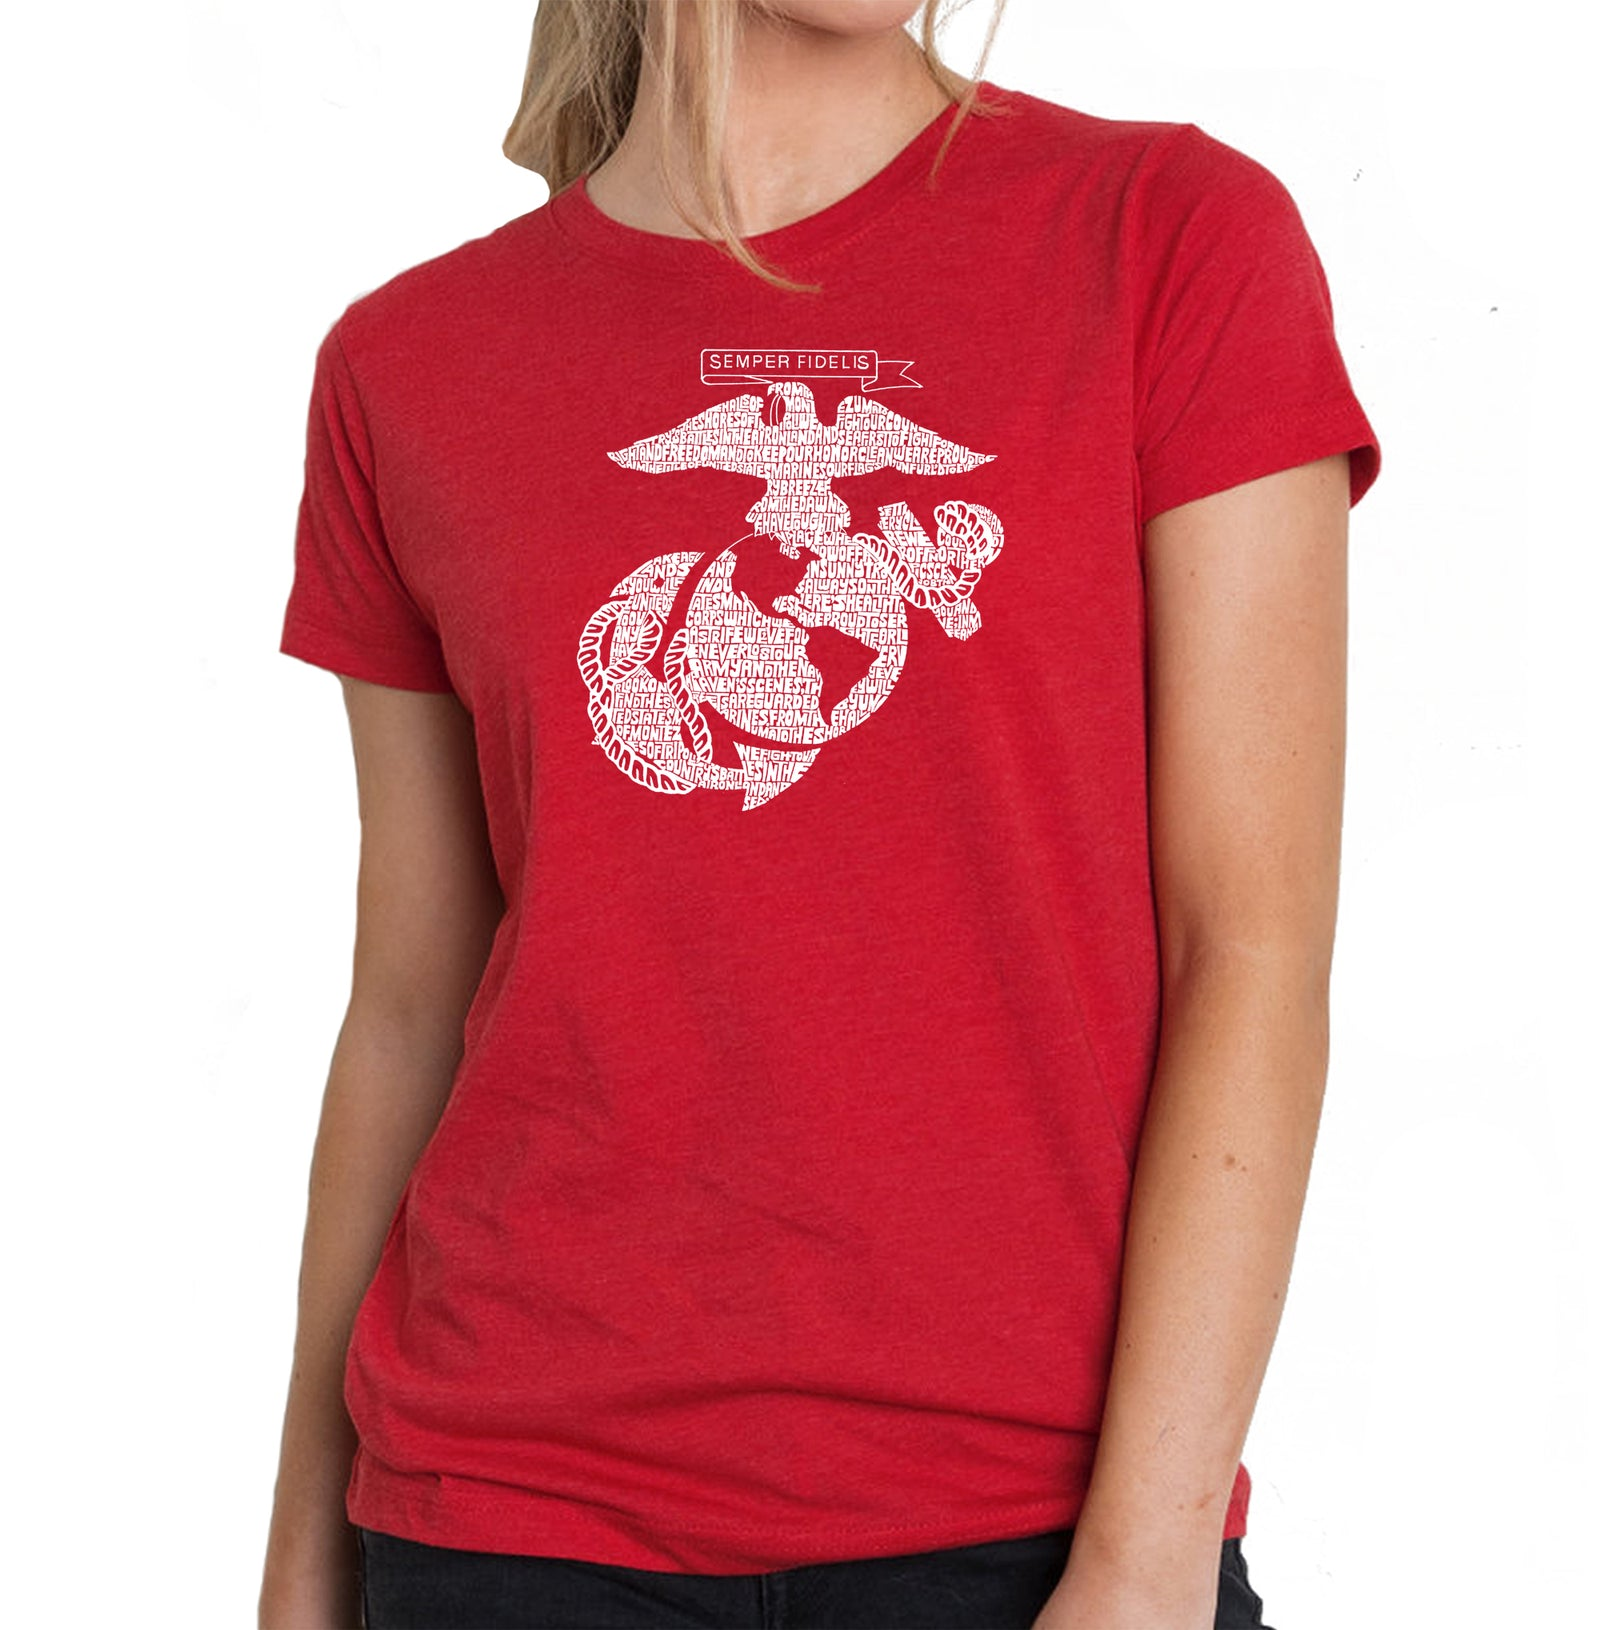 Women's Premium Blend Word Art T-shirt - LYRICS TO THE MARINES HYMN